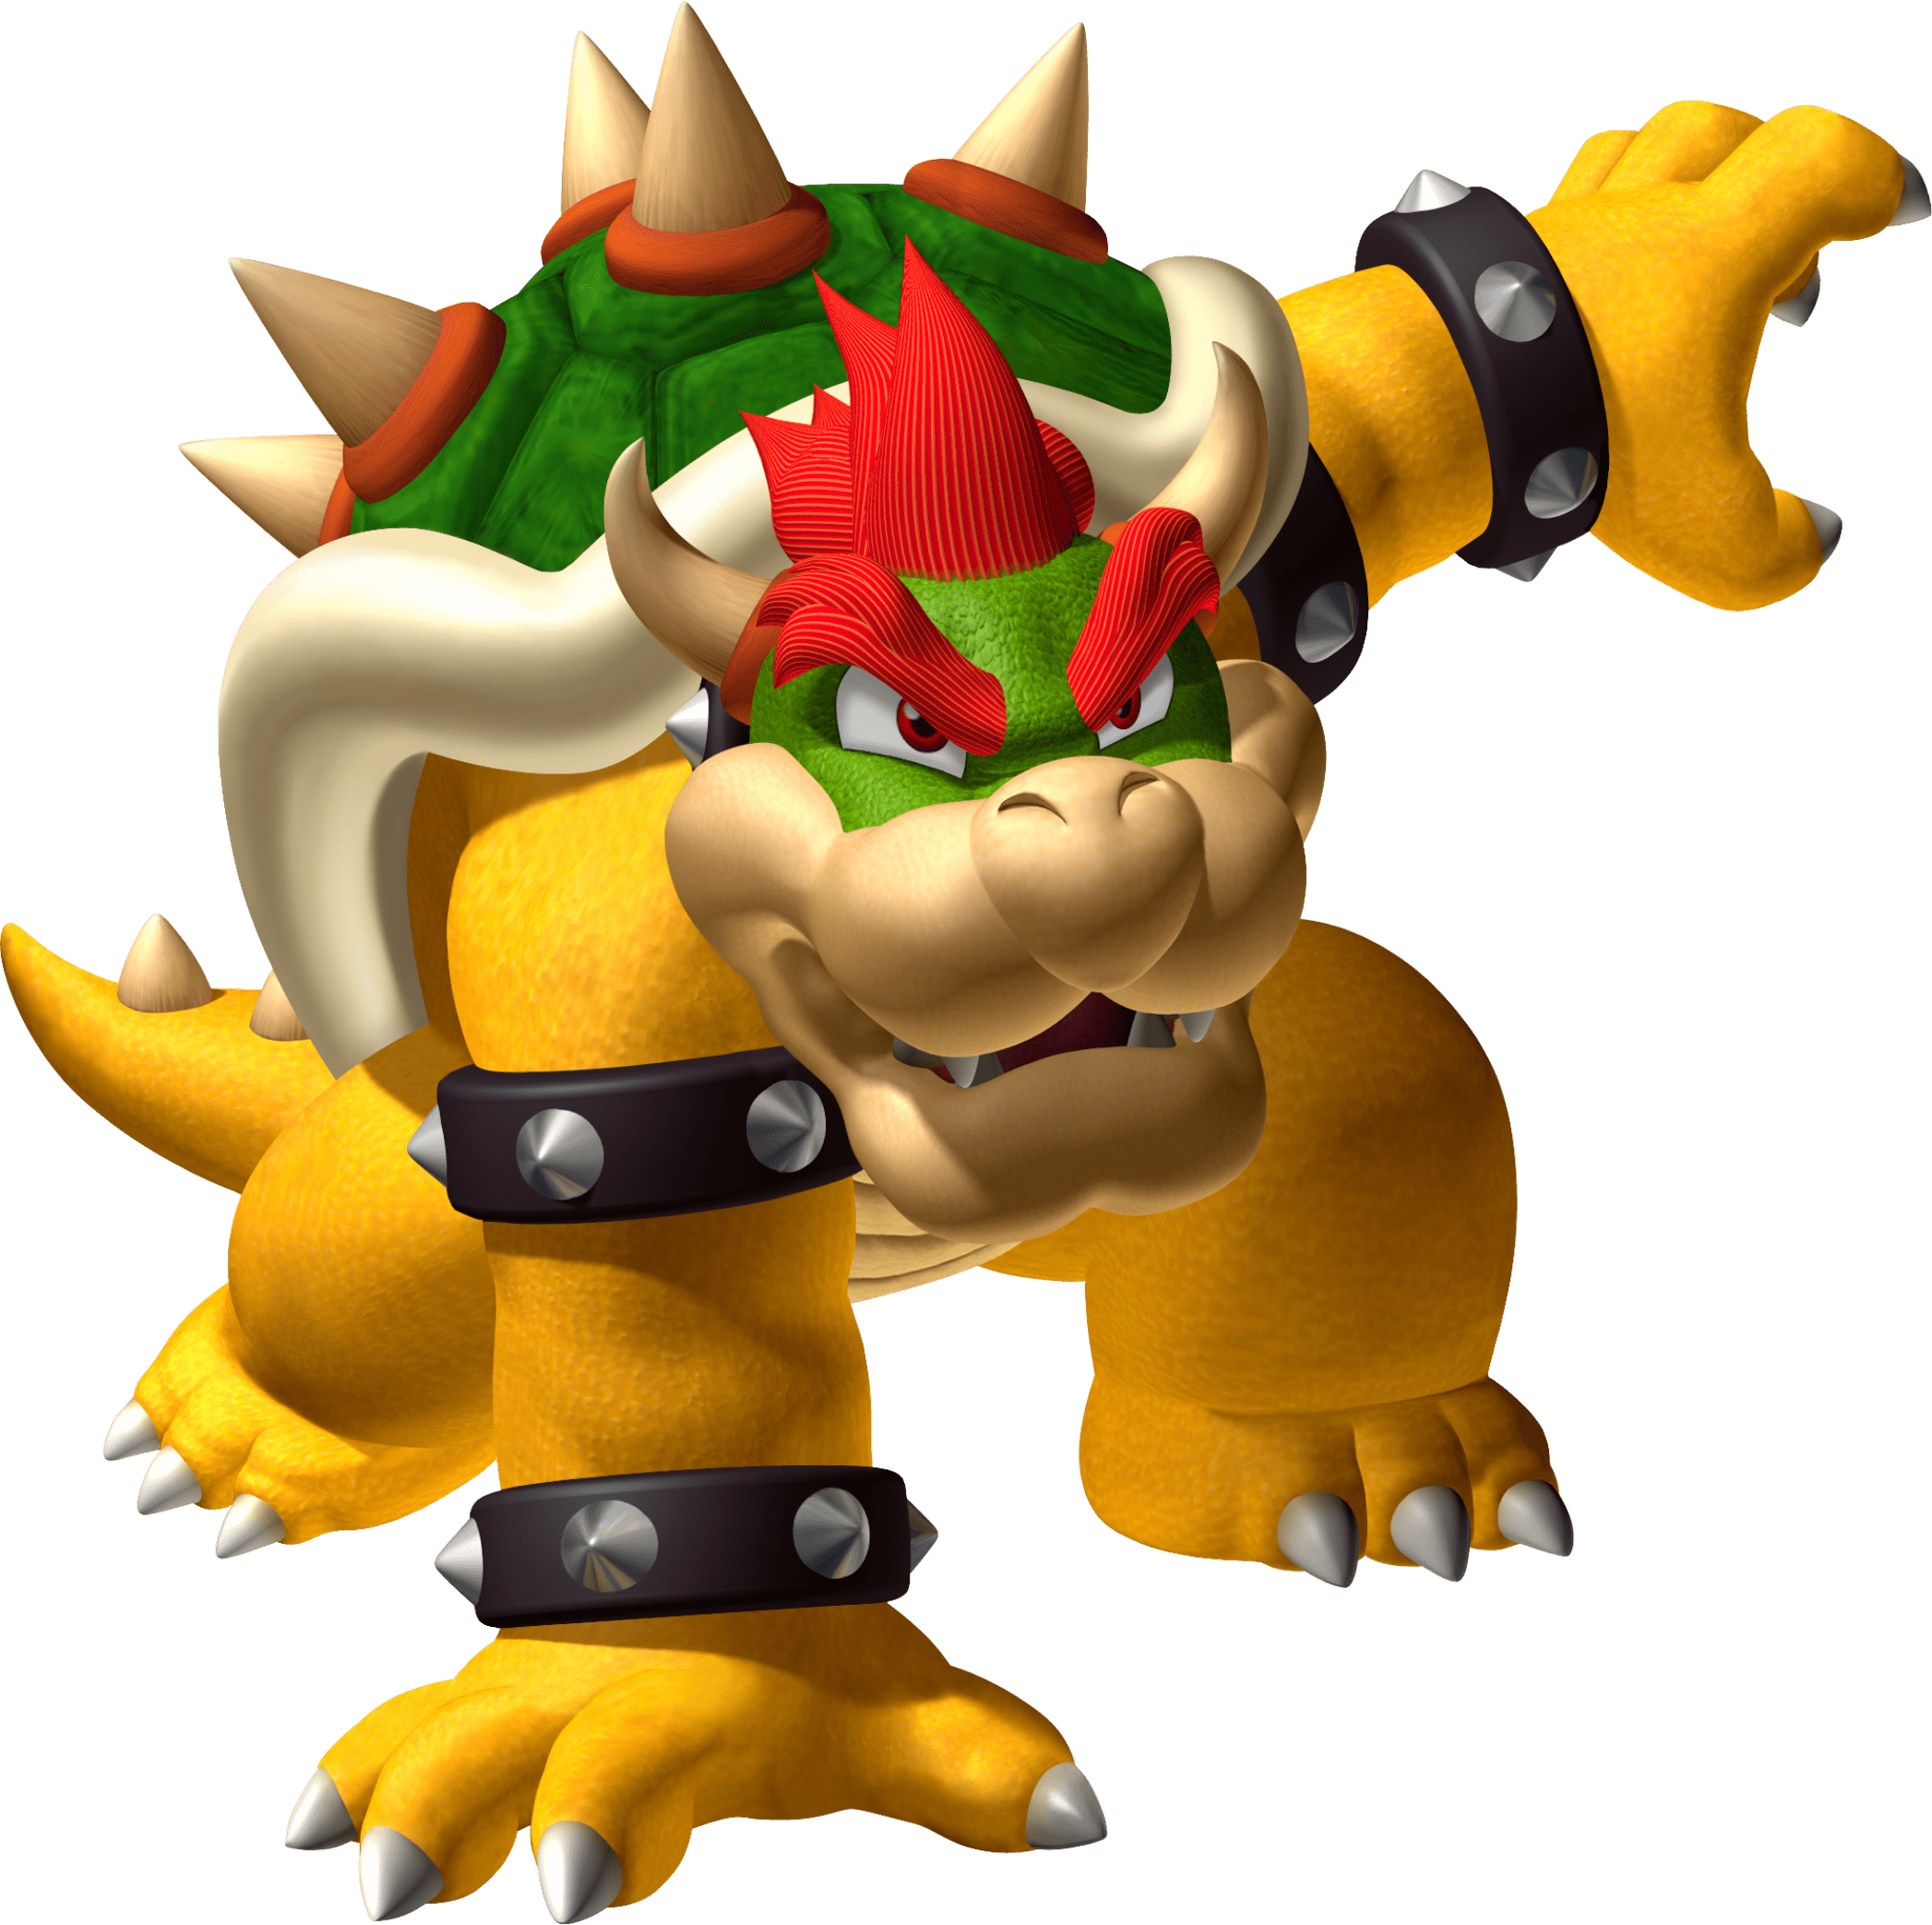 Wallpaper 3d Mario Bros The Bowser Shrine News Amp Updates